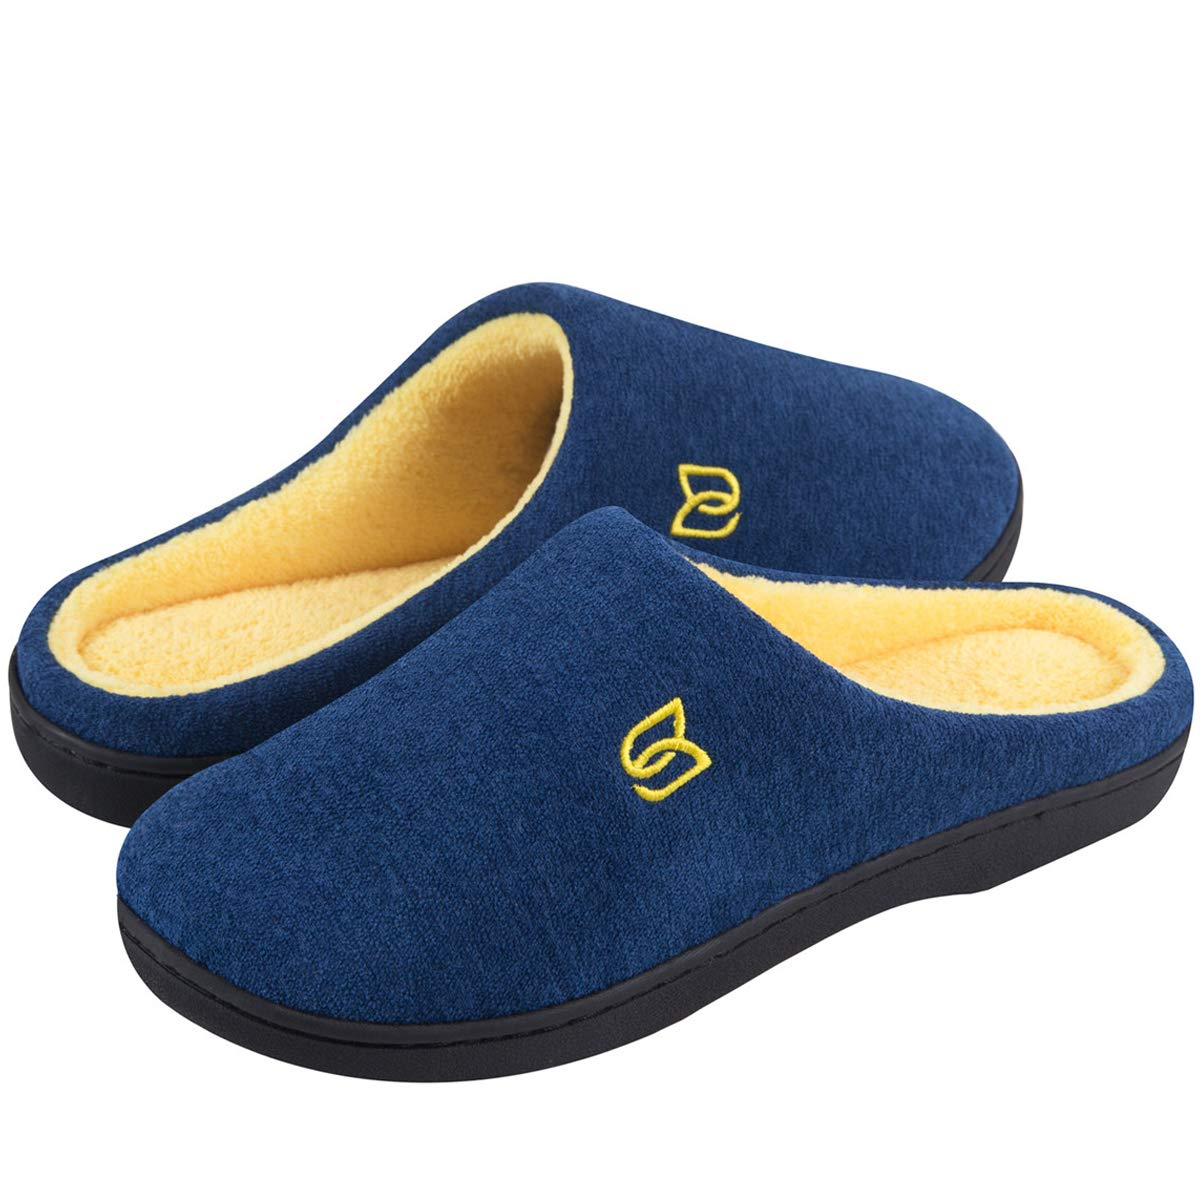 Men's Classic Memory Foam Slippers Comfort Plush Lining House Shoes for Indoor & Outdoor (Dark Blue/Maize, 40/41)